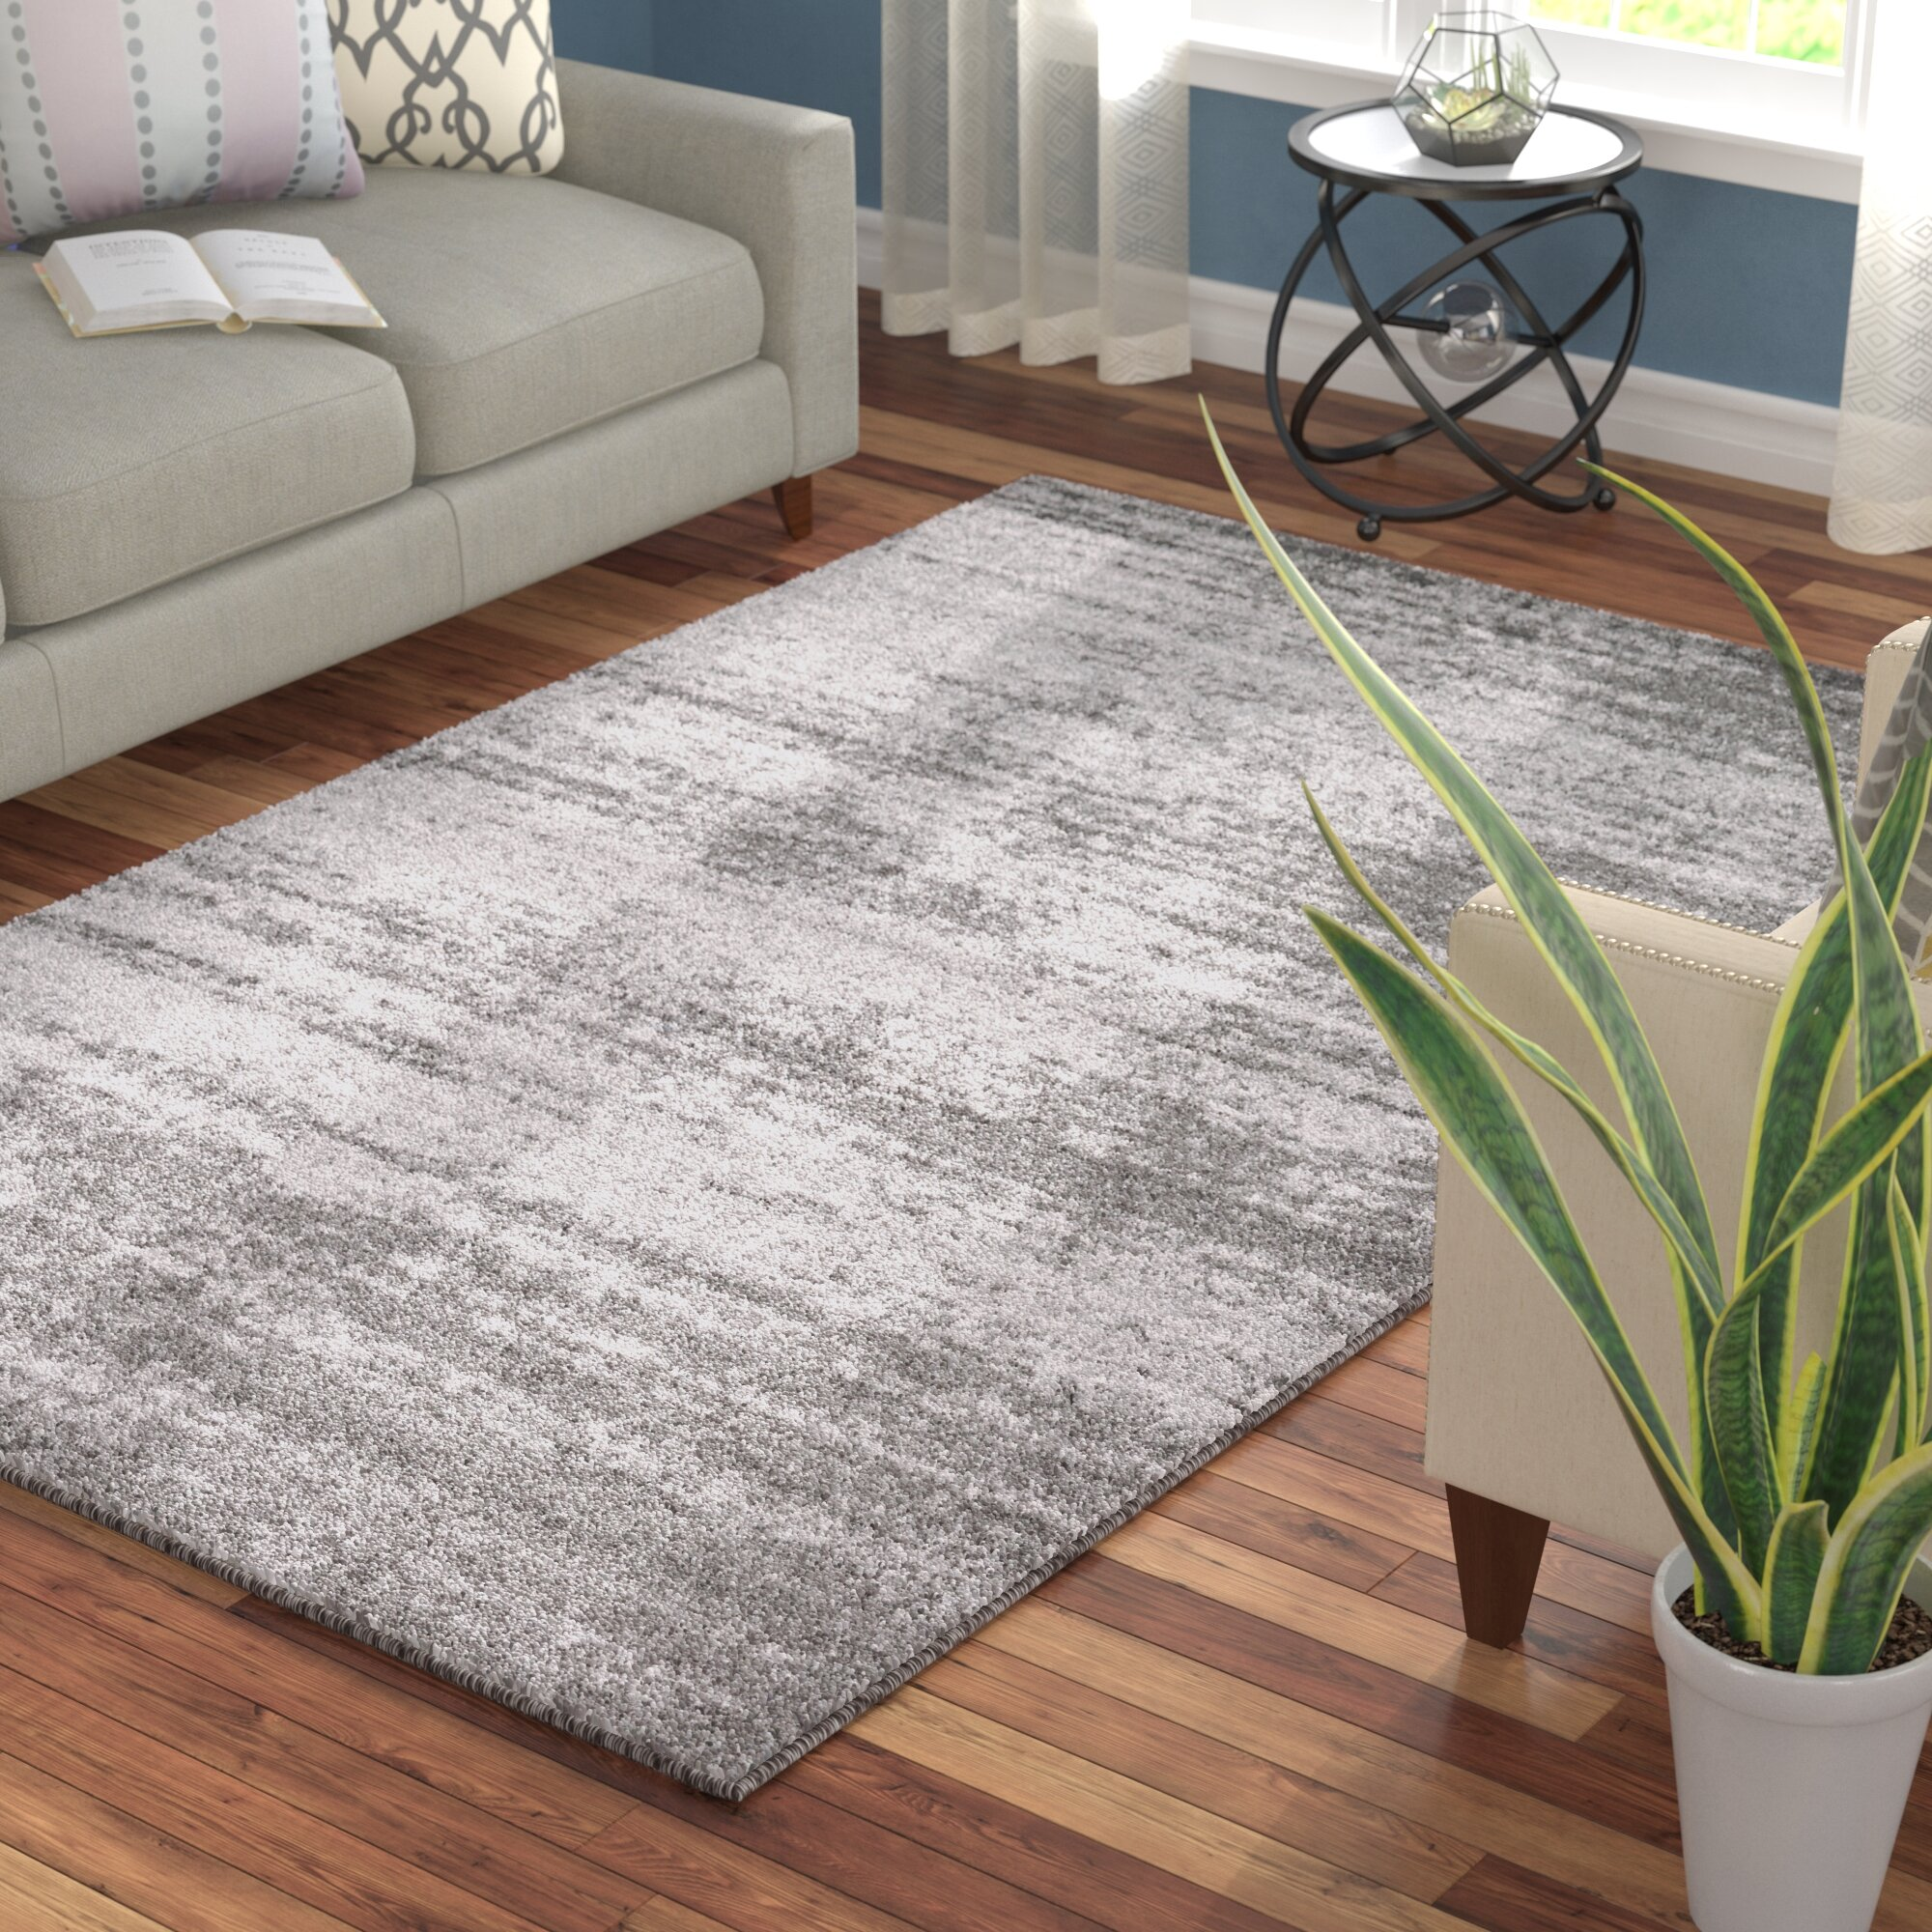 Area Rugs That Go With Gray Furniture Area Rug Ideas